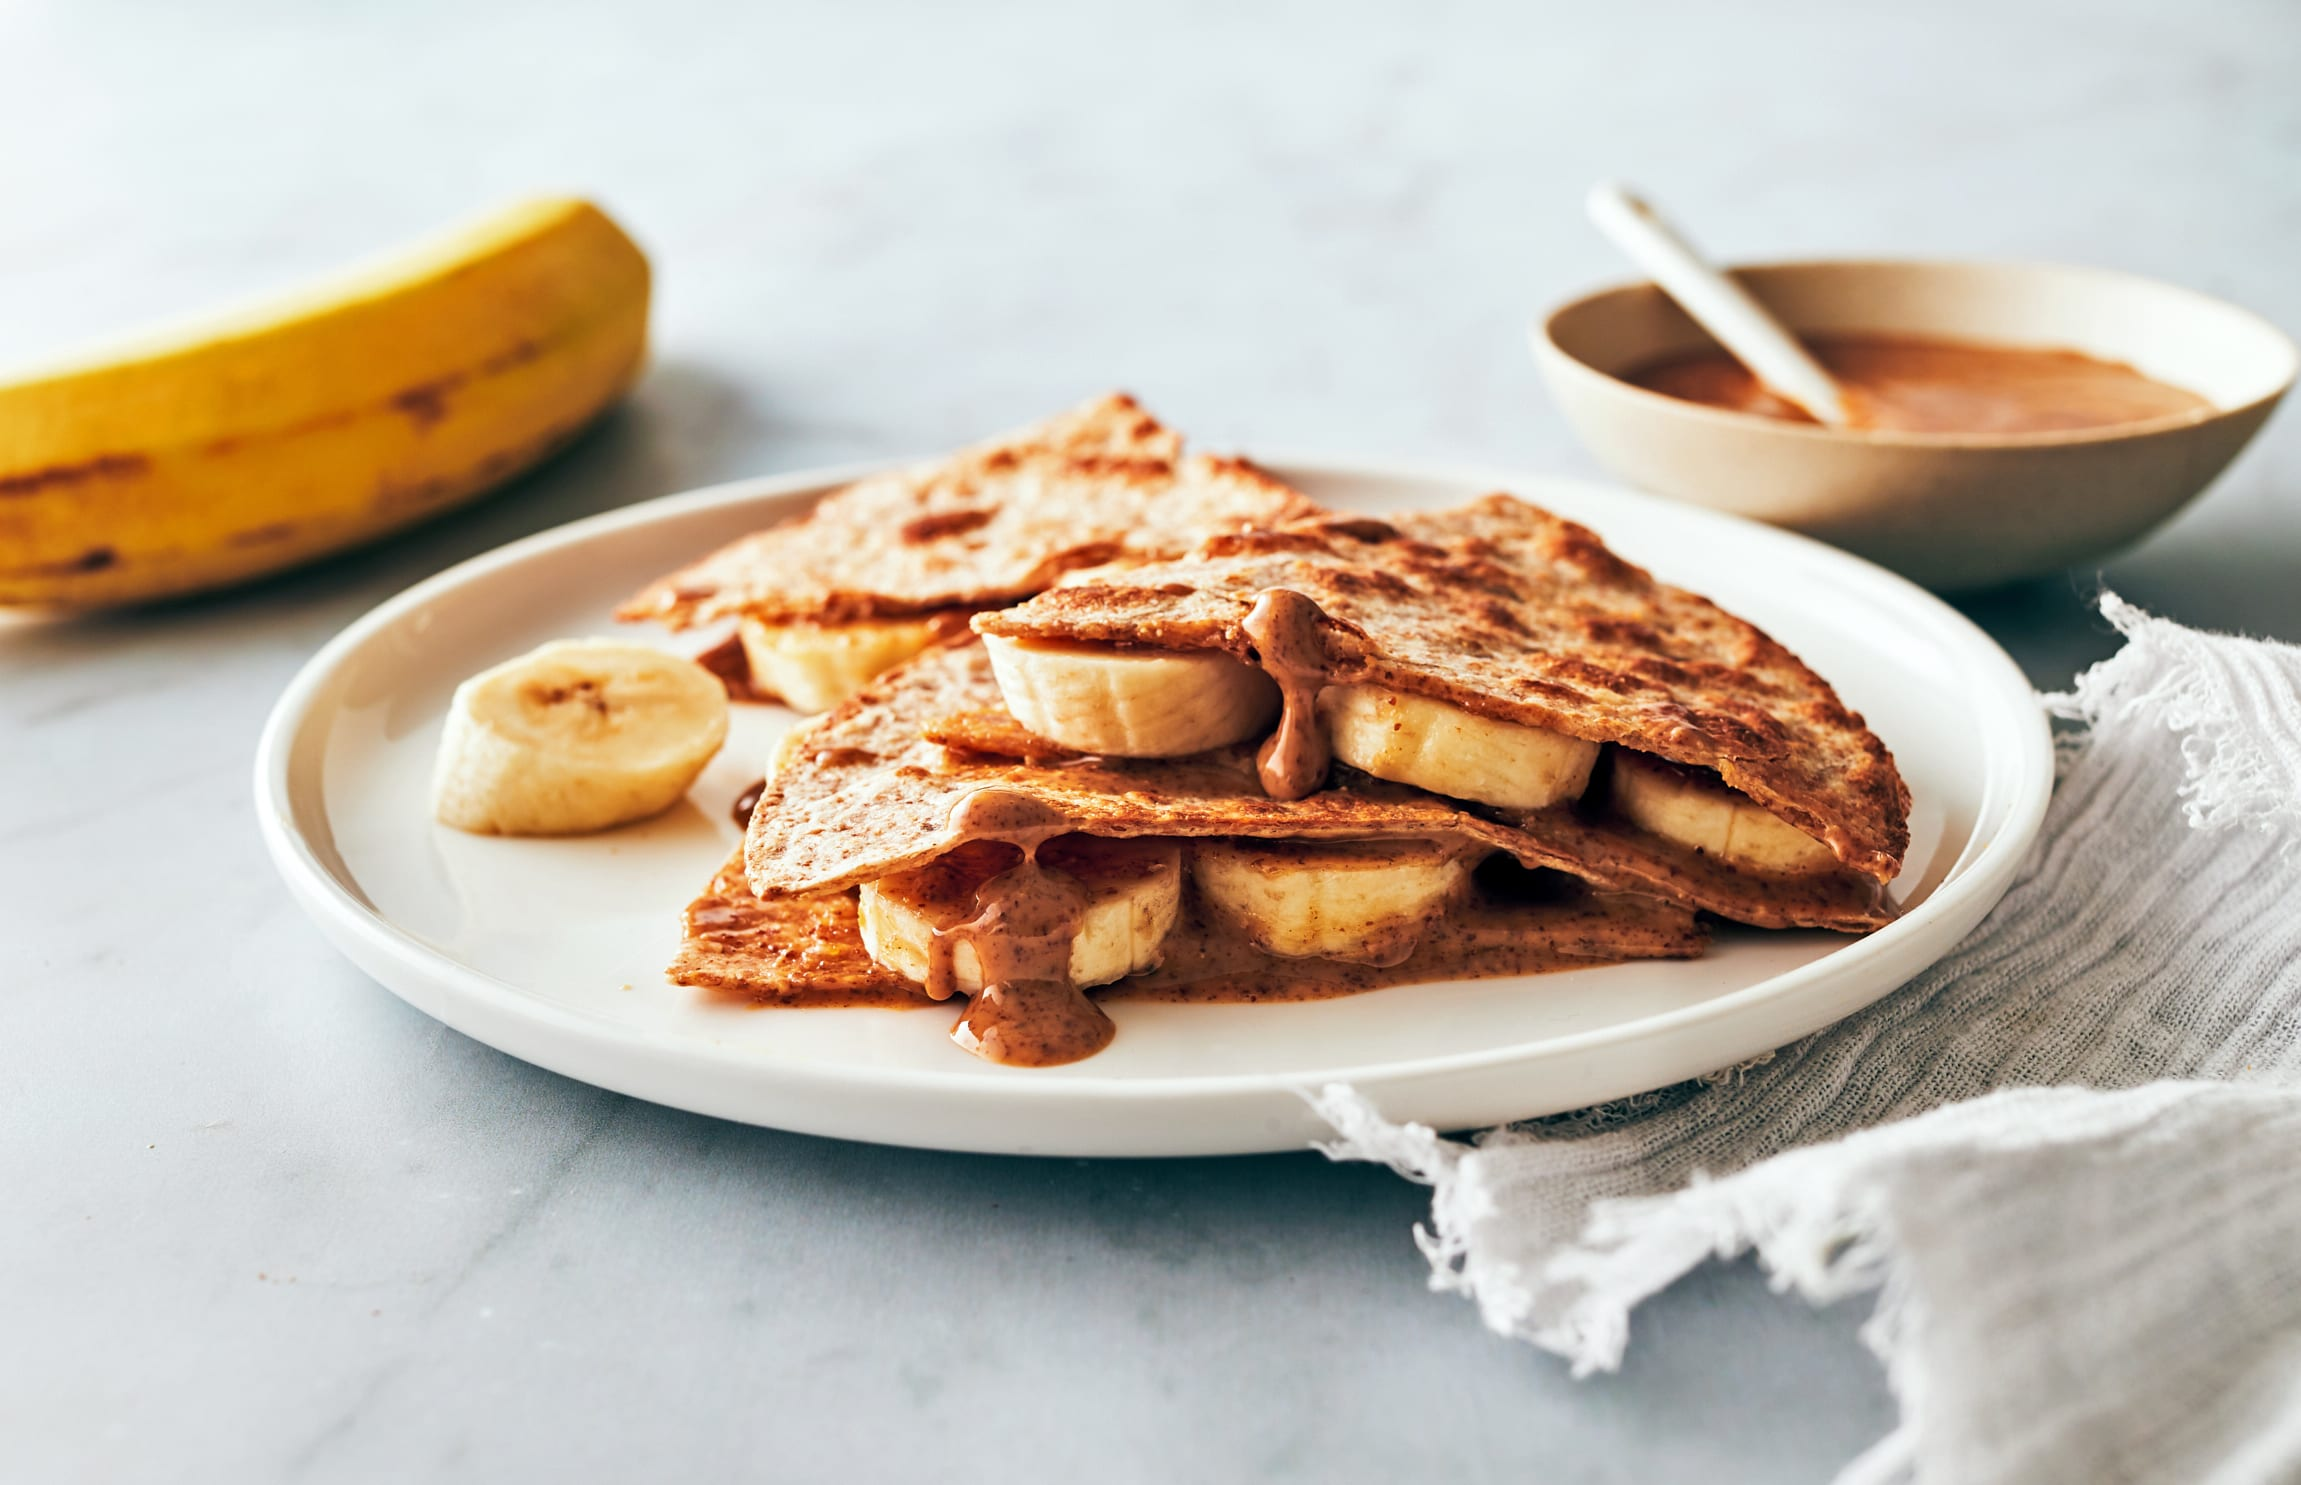 easy healthy snack ideas - Banana and Almond Butter Quesadilla